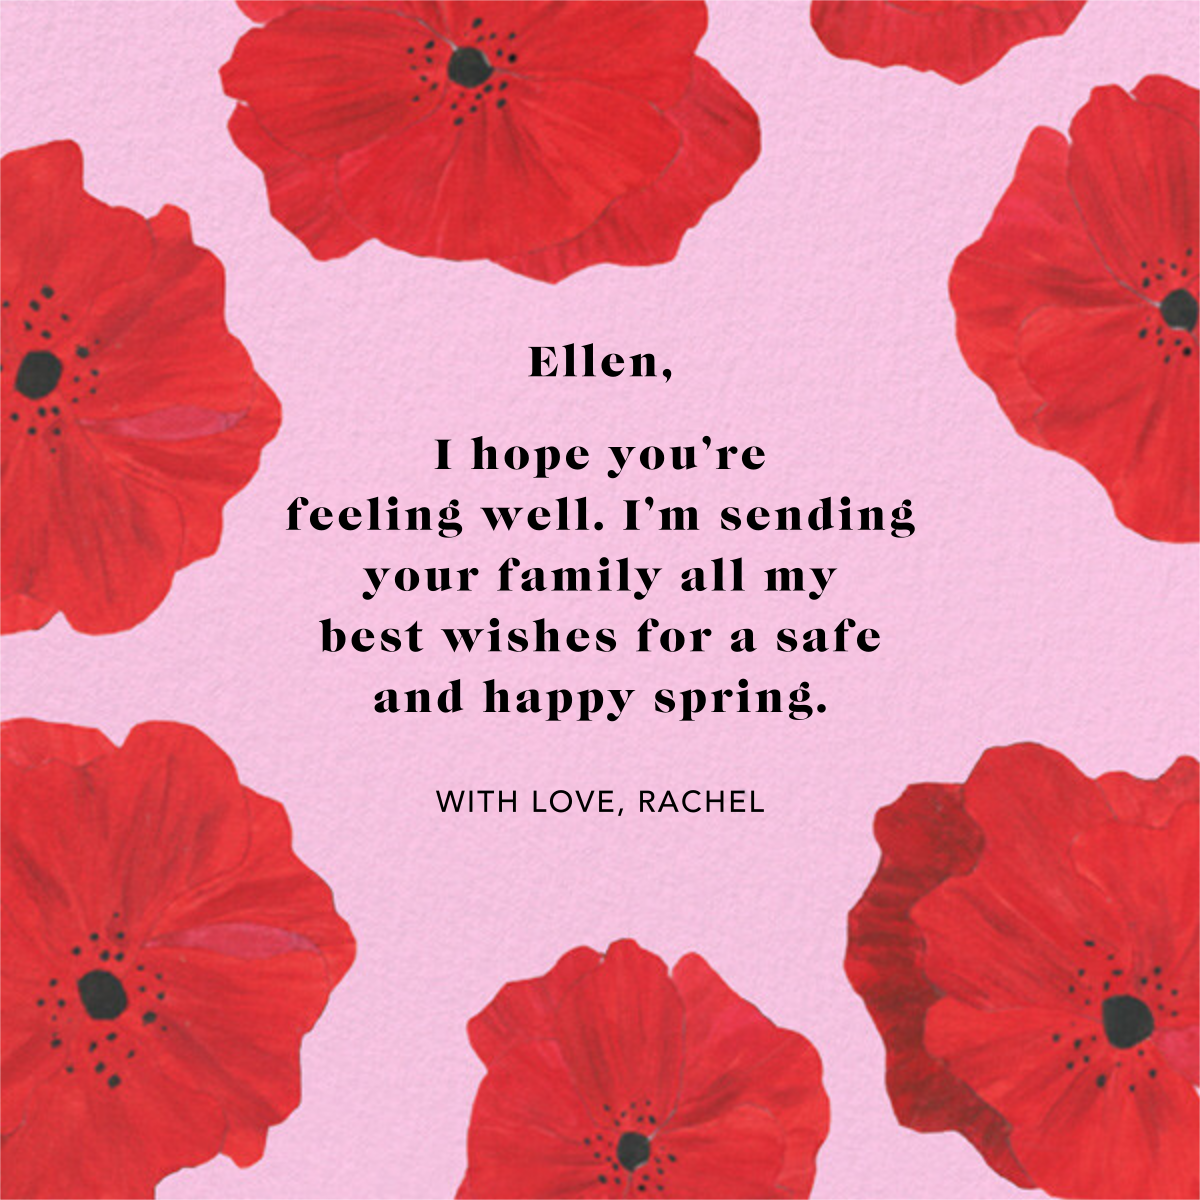 Red Petals - Carnation - Anthropologie - Thinking of you